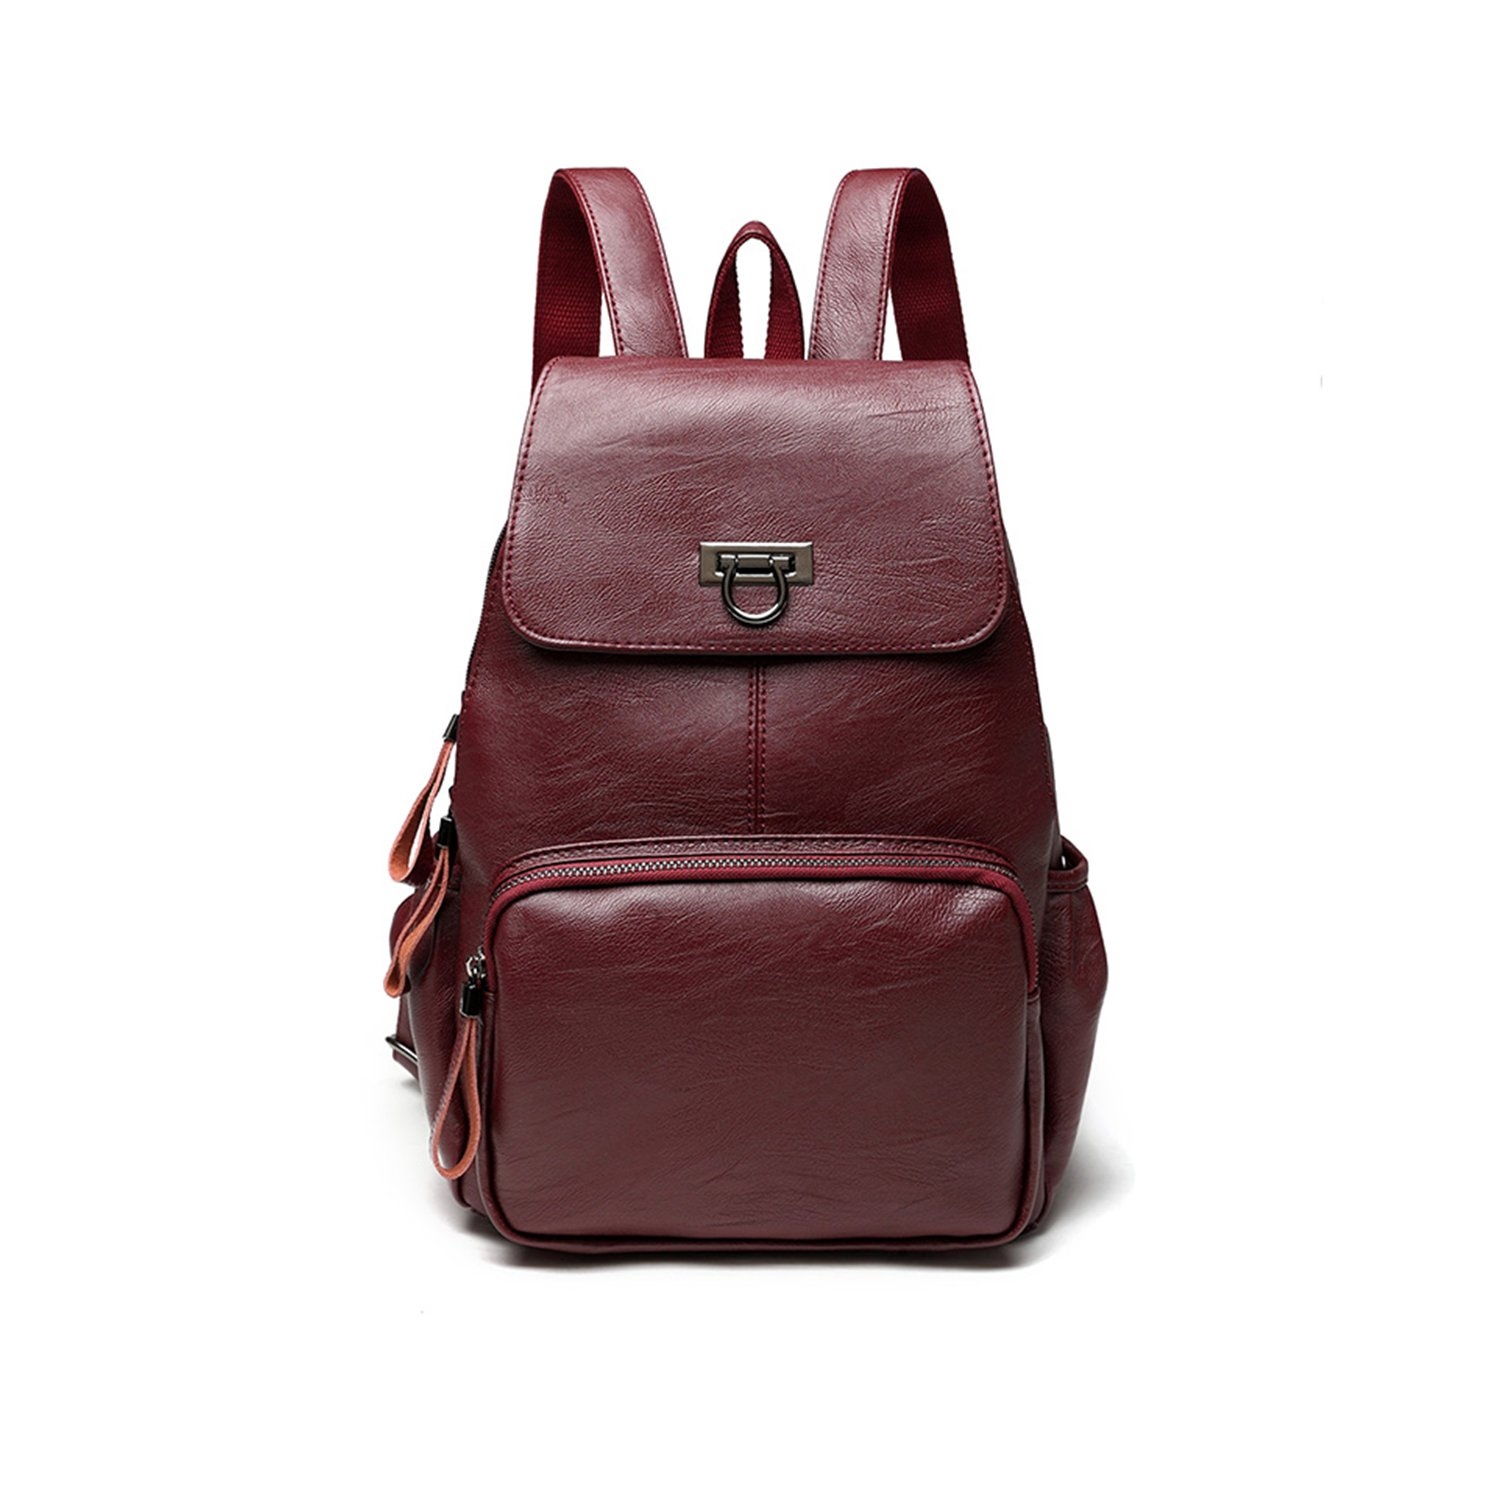 CARQI Leather Backpack Fashion Mini School Handbag Stylish Lovely for Women, Ladies and Girl